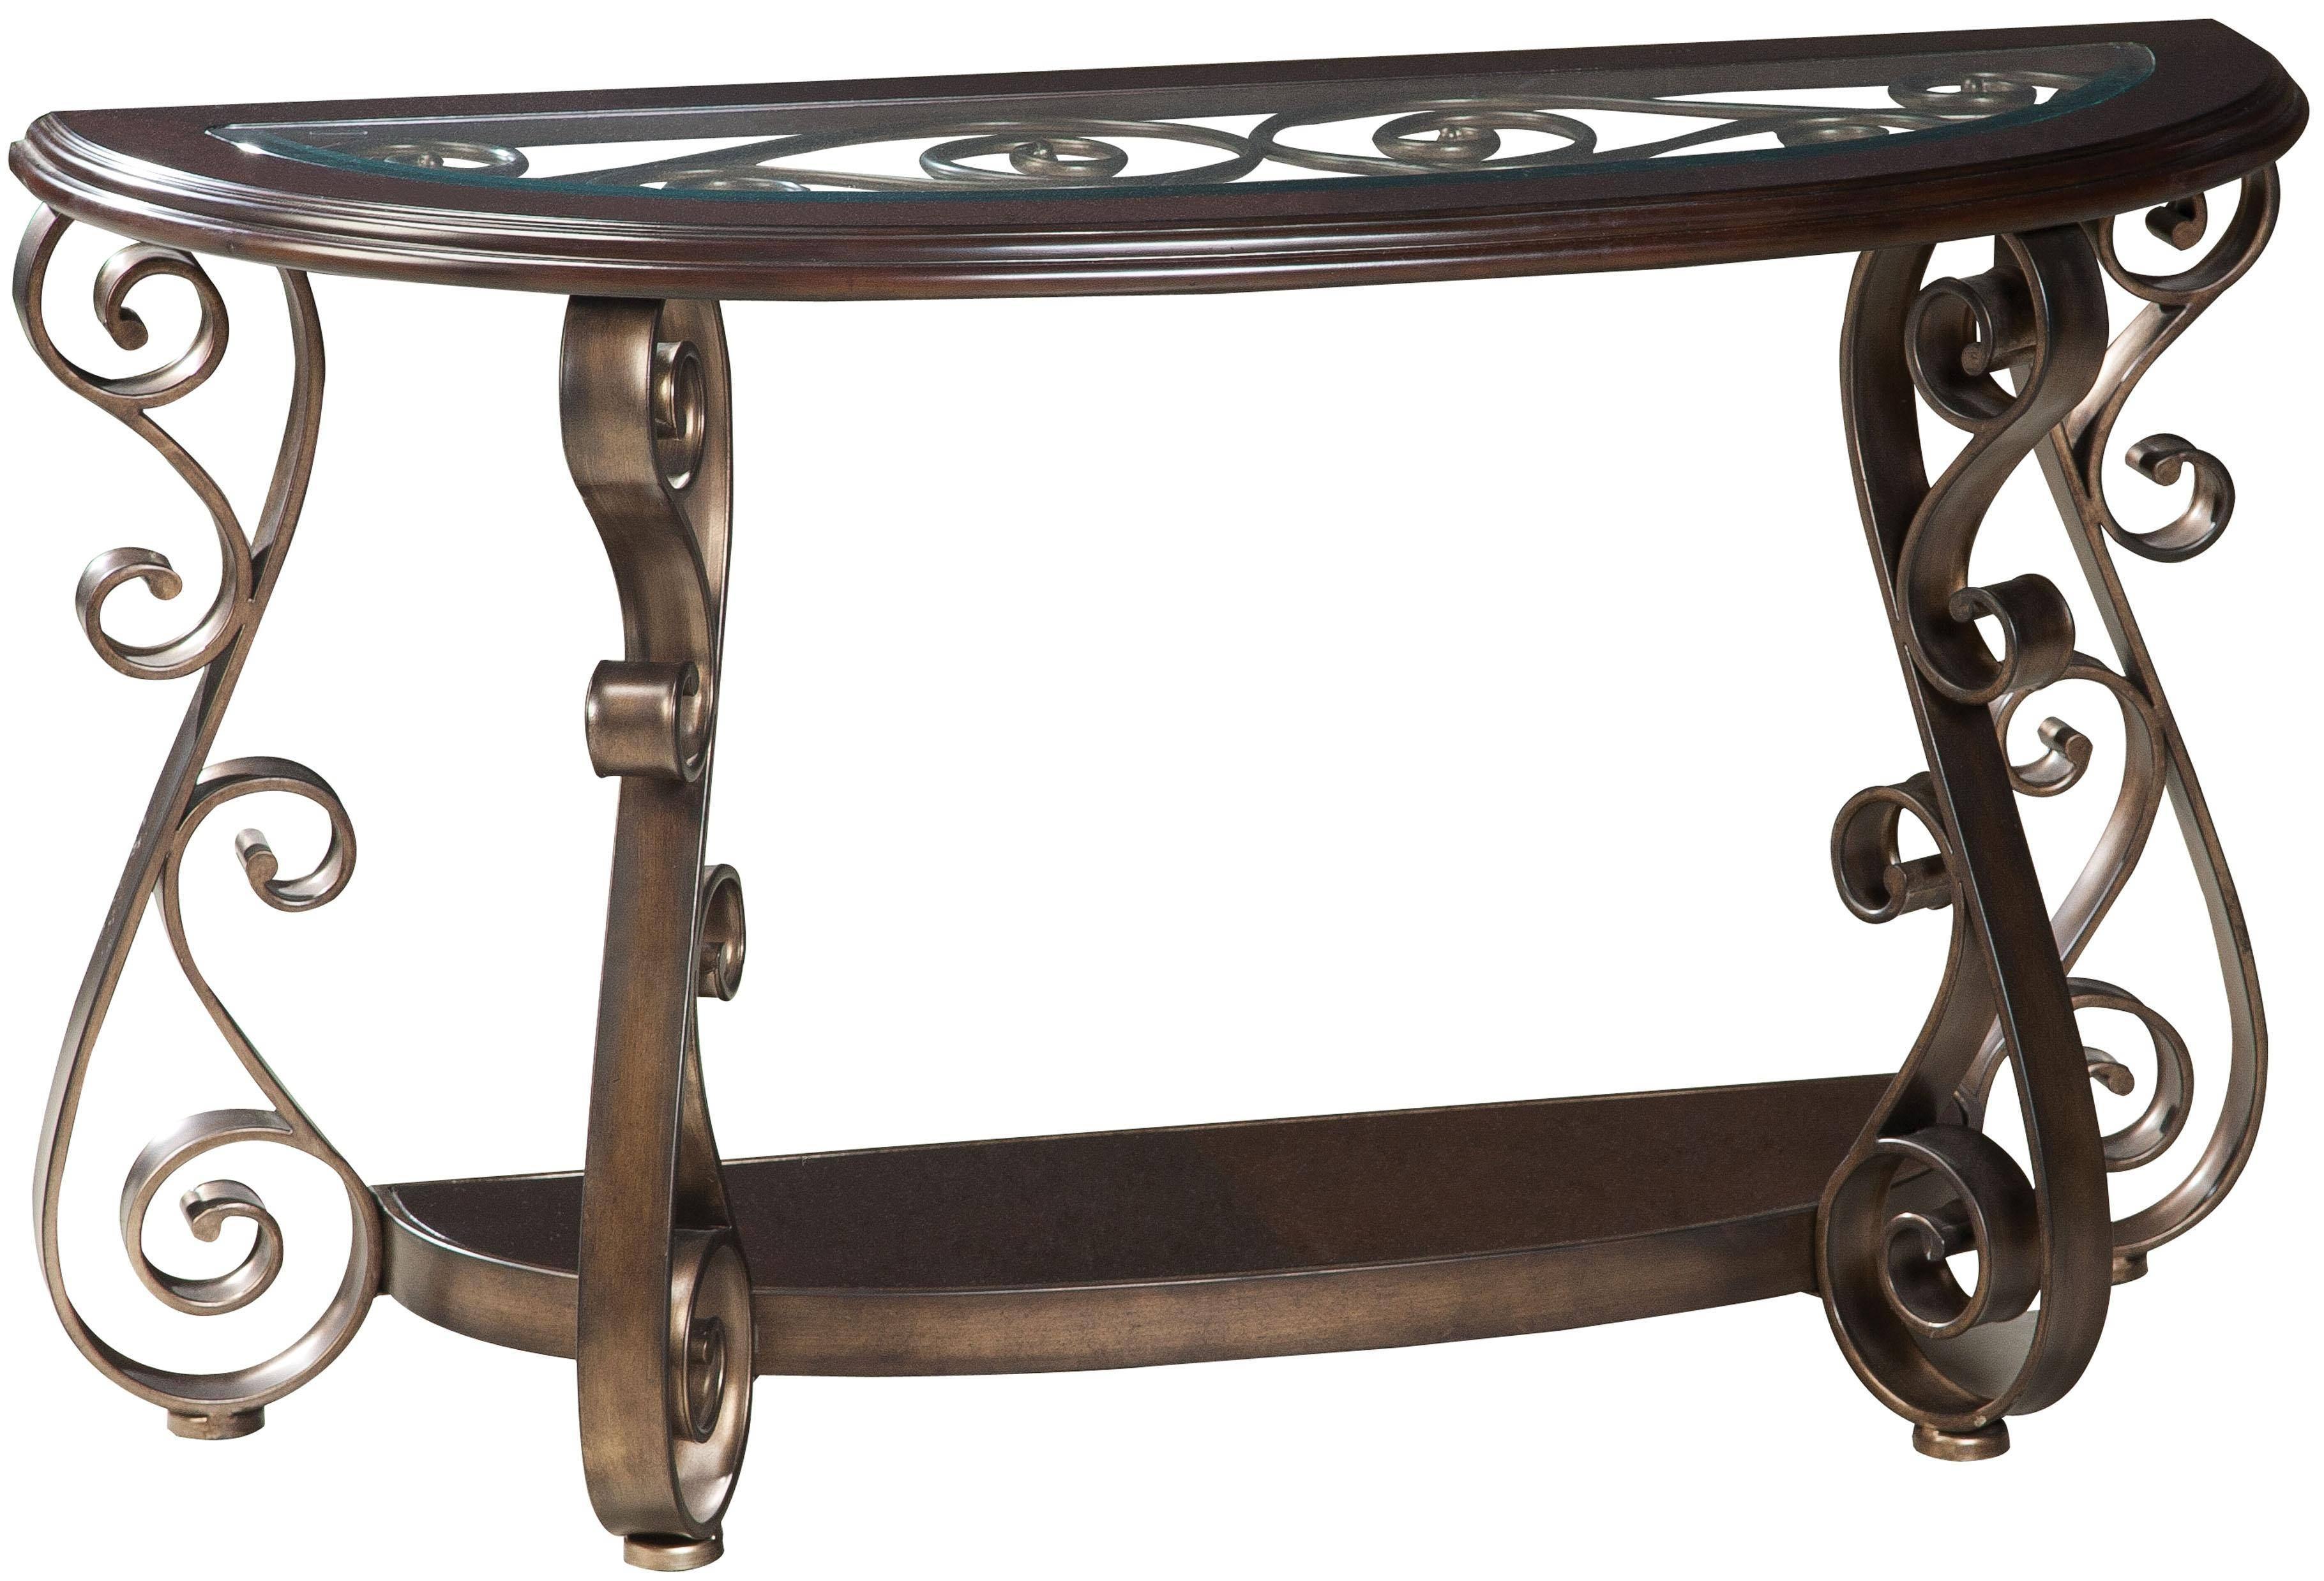 Standard Furniture Bombay Old World Sofa Table With Glass Top And inside Sofa Table Chairs (Image 28 of 30)